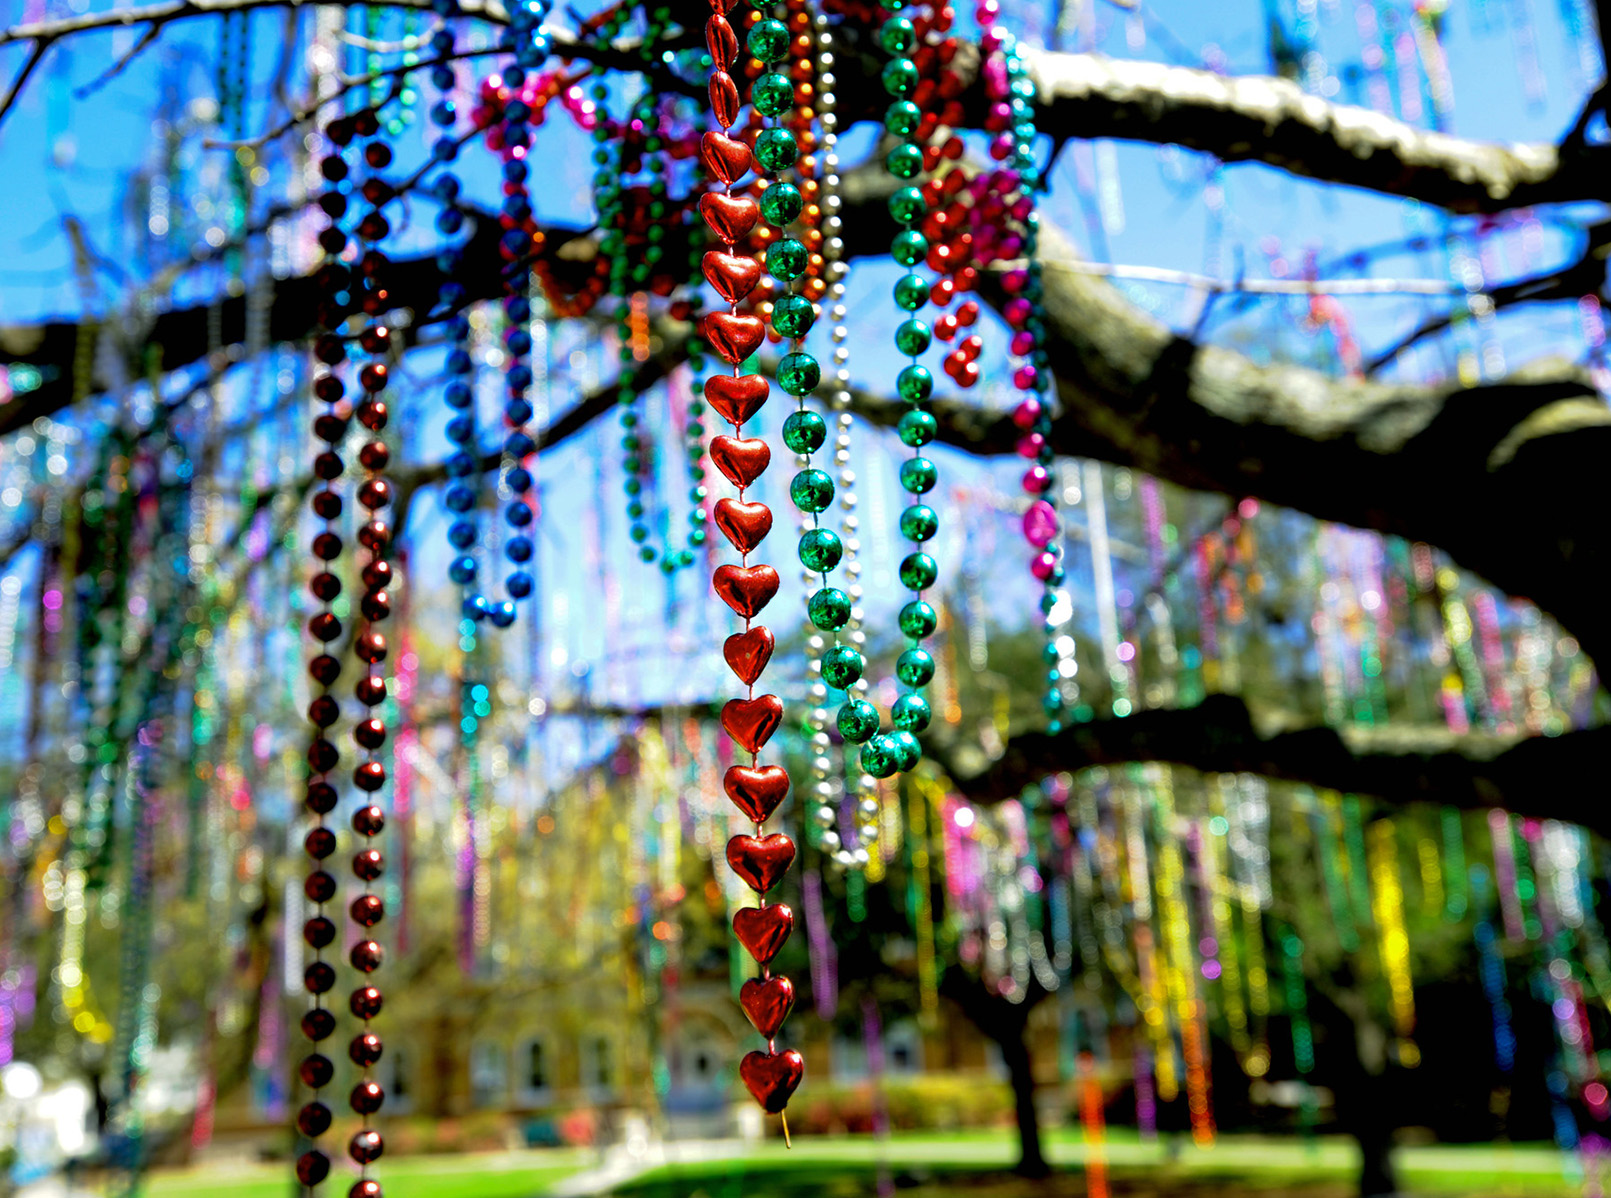 colorful mardi gras beads hang from a tree on tulane's campus